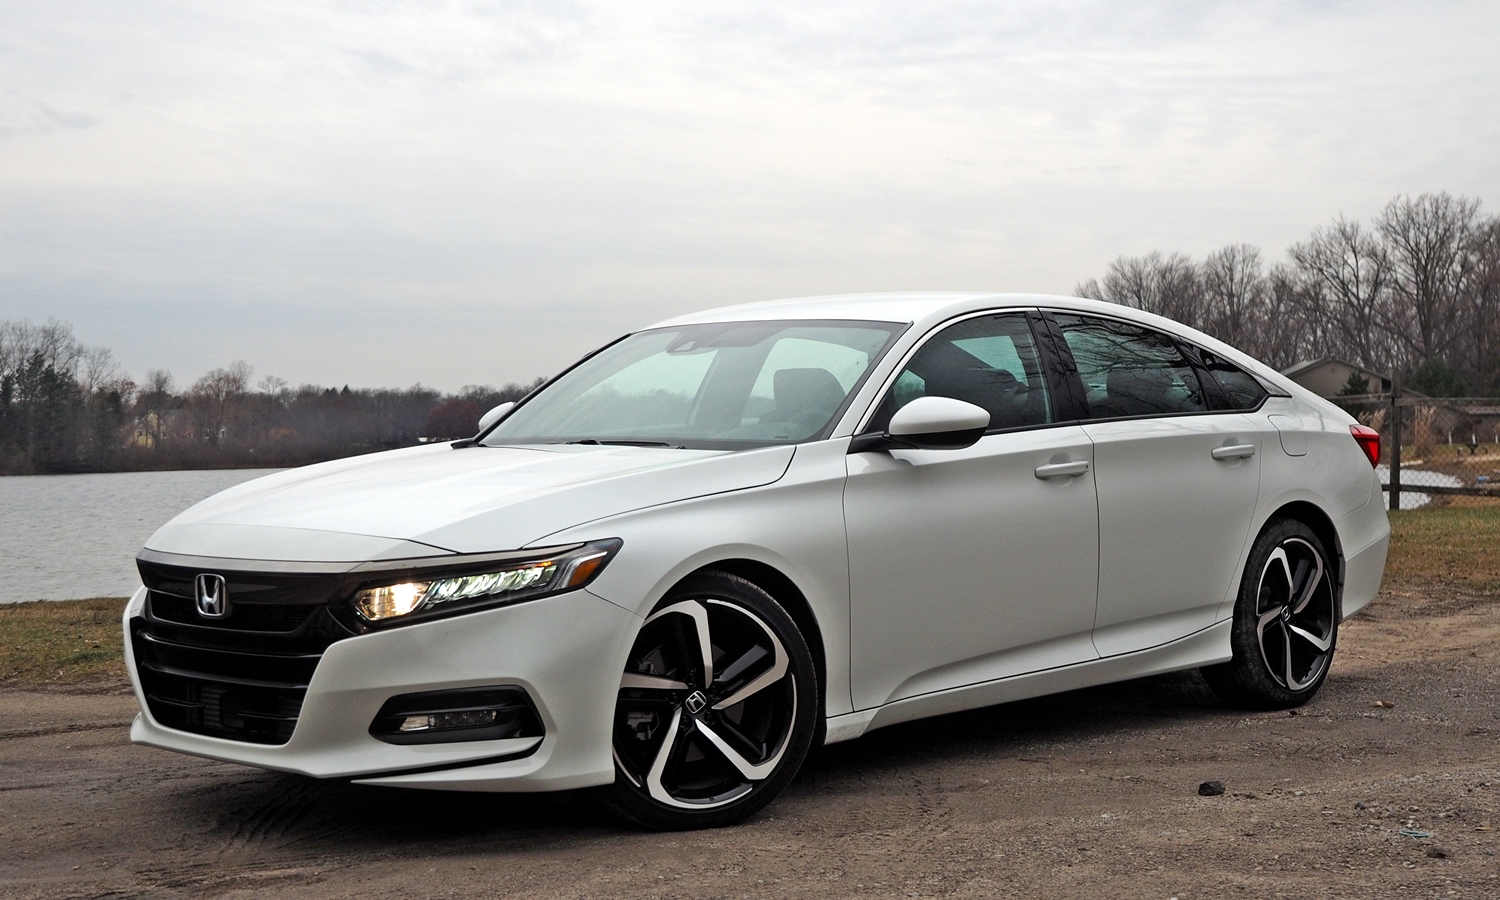 Honda Accord Lx >> 2018 Honda Accord Pros and Cons at TrueDelta: 2018 Honda Accord Sport Review by Michael Karesh